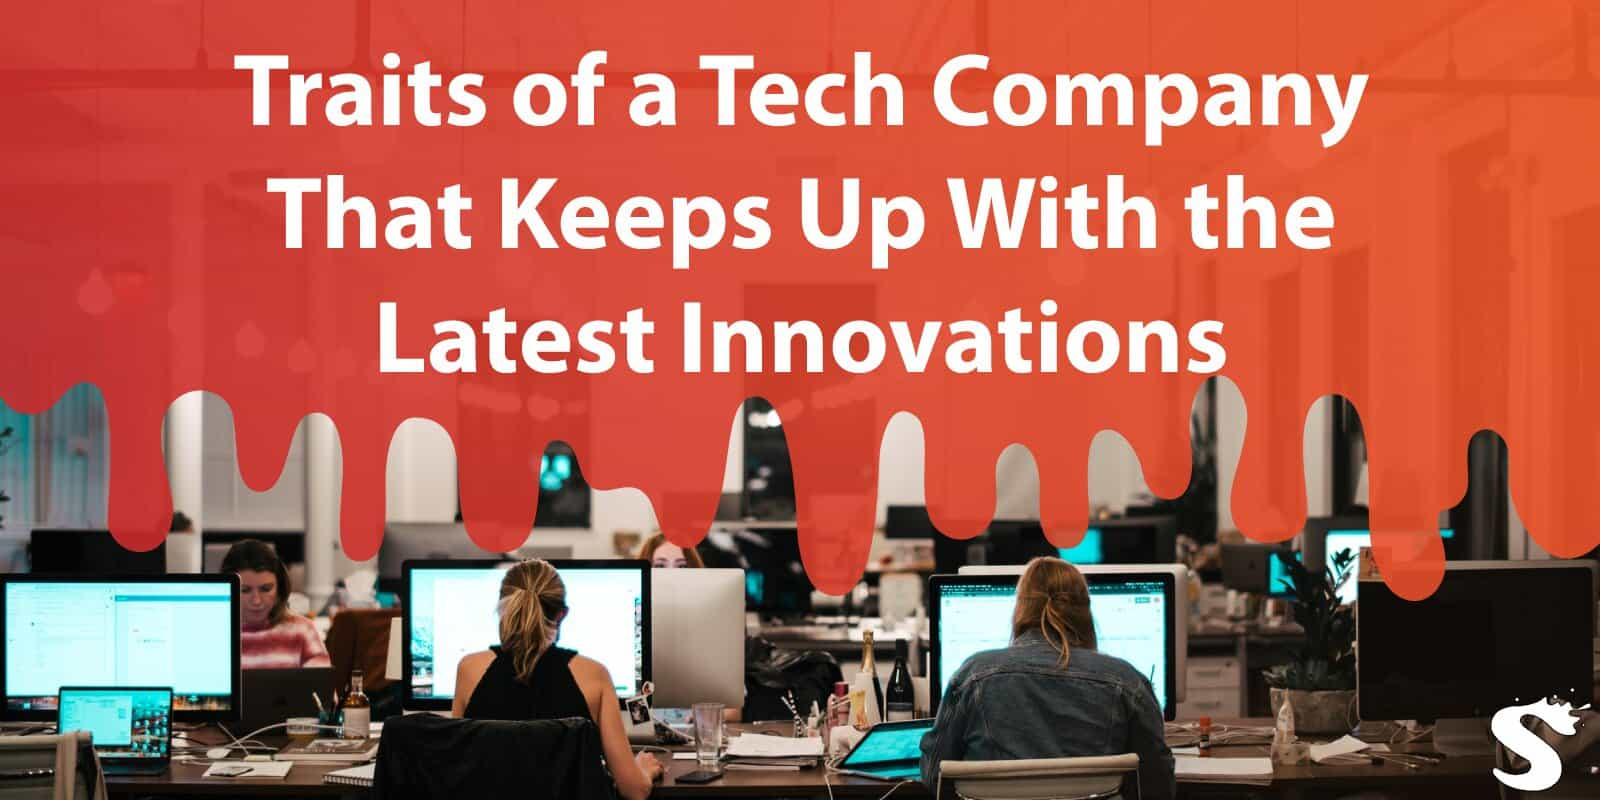 5 Traits of a Tech Company That Keeps Up With the Latest Innovations